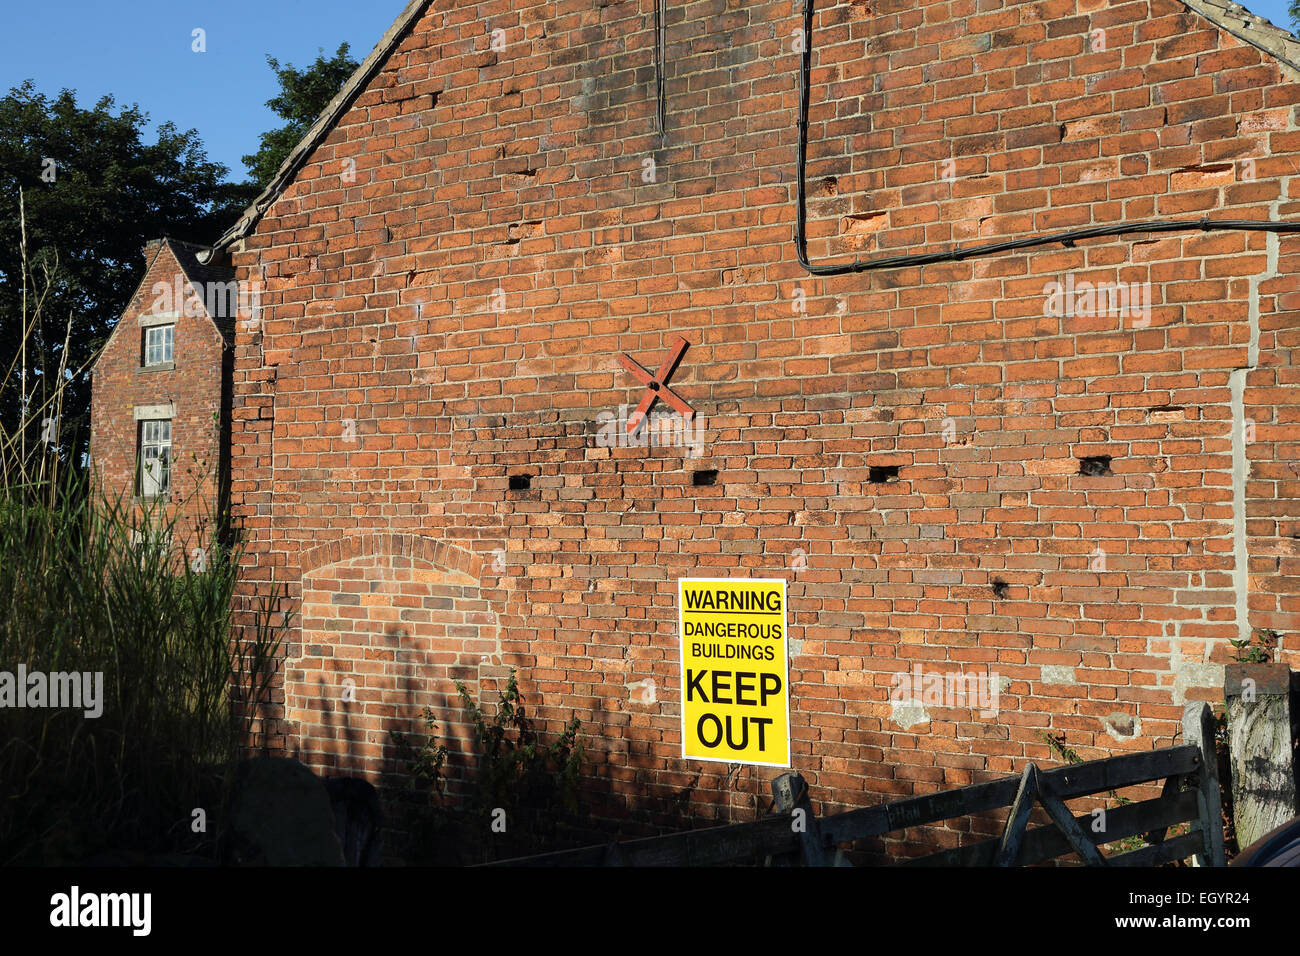 Warning Dangerous Buildings Keep Out sign on building - Stock Image